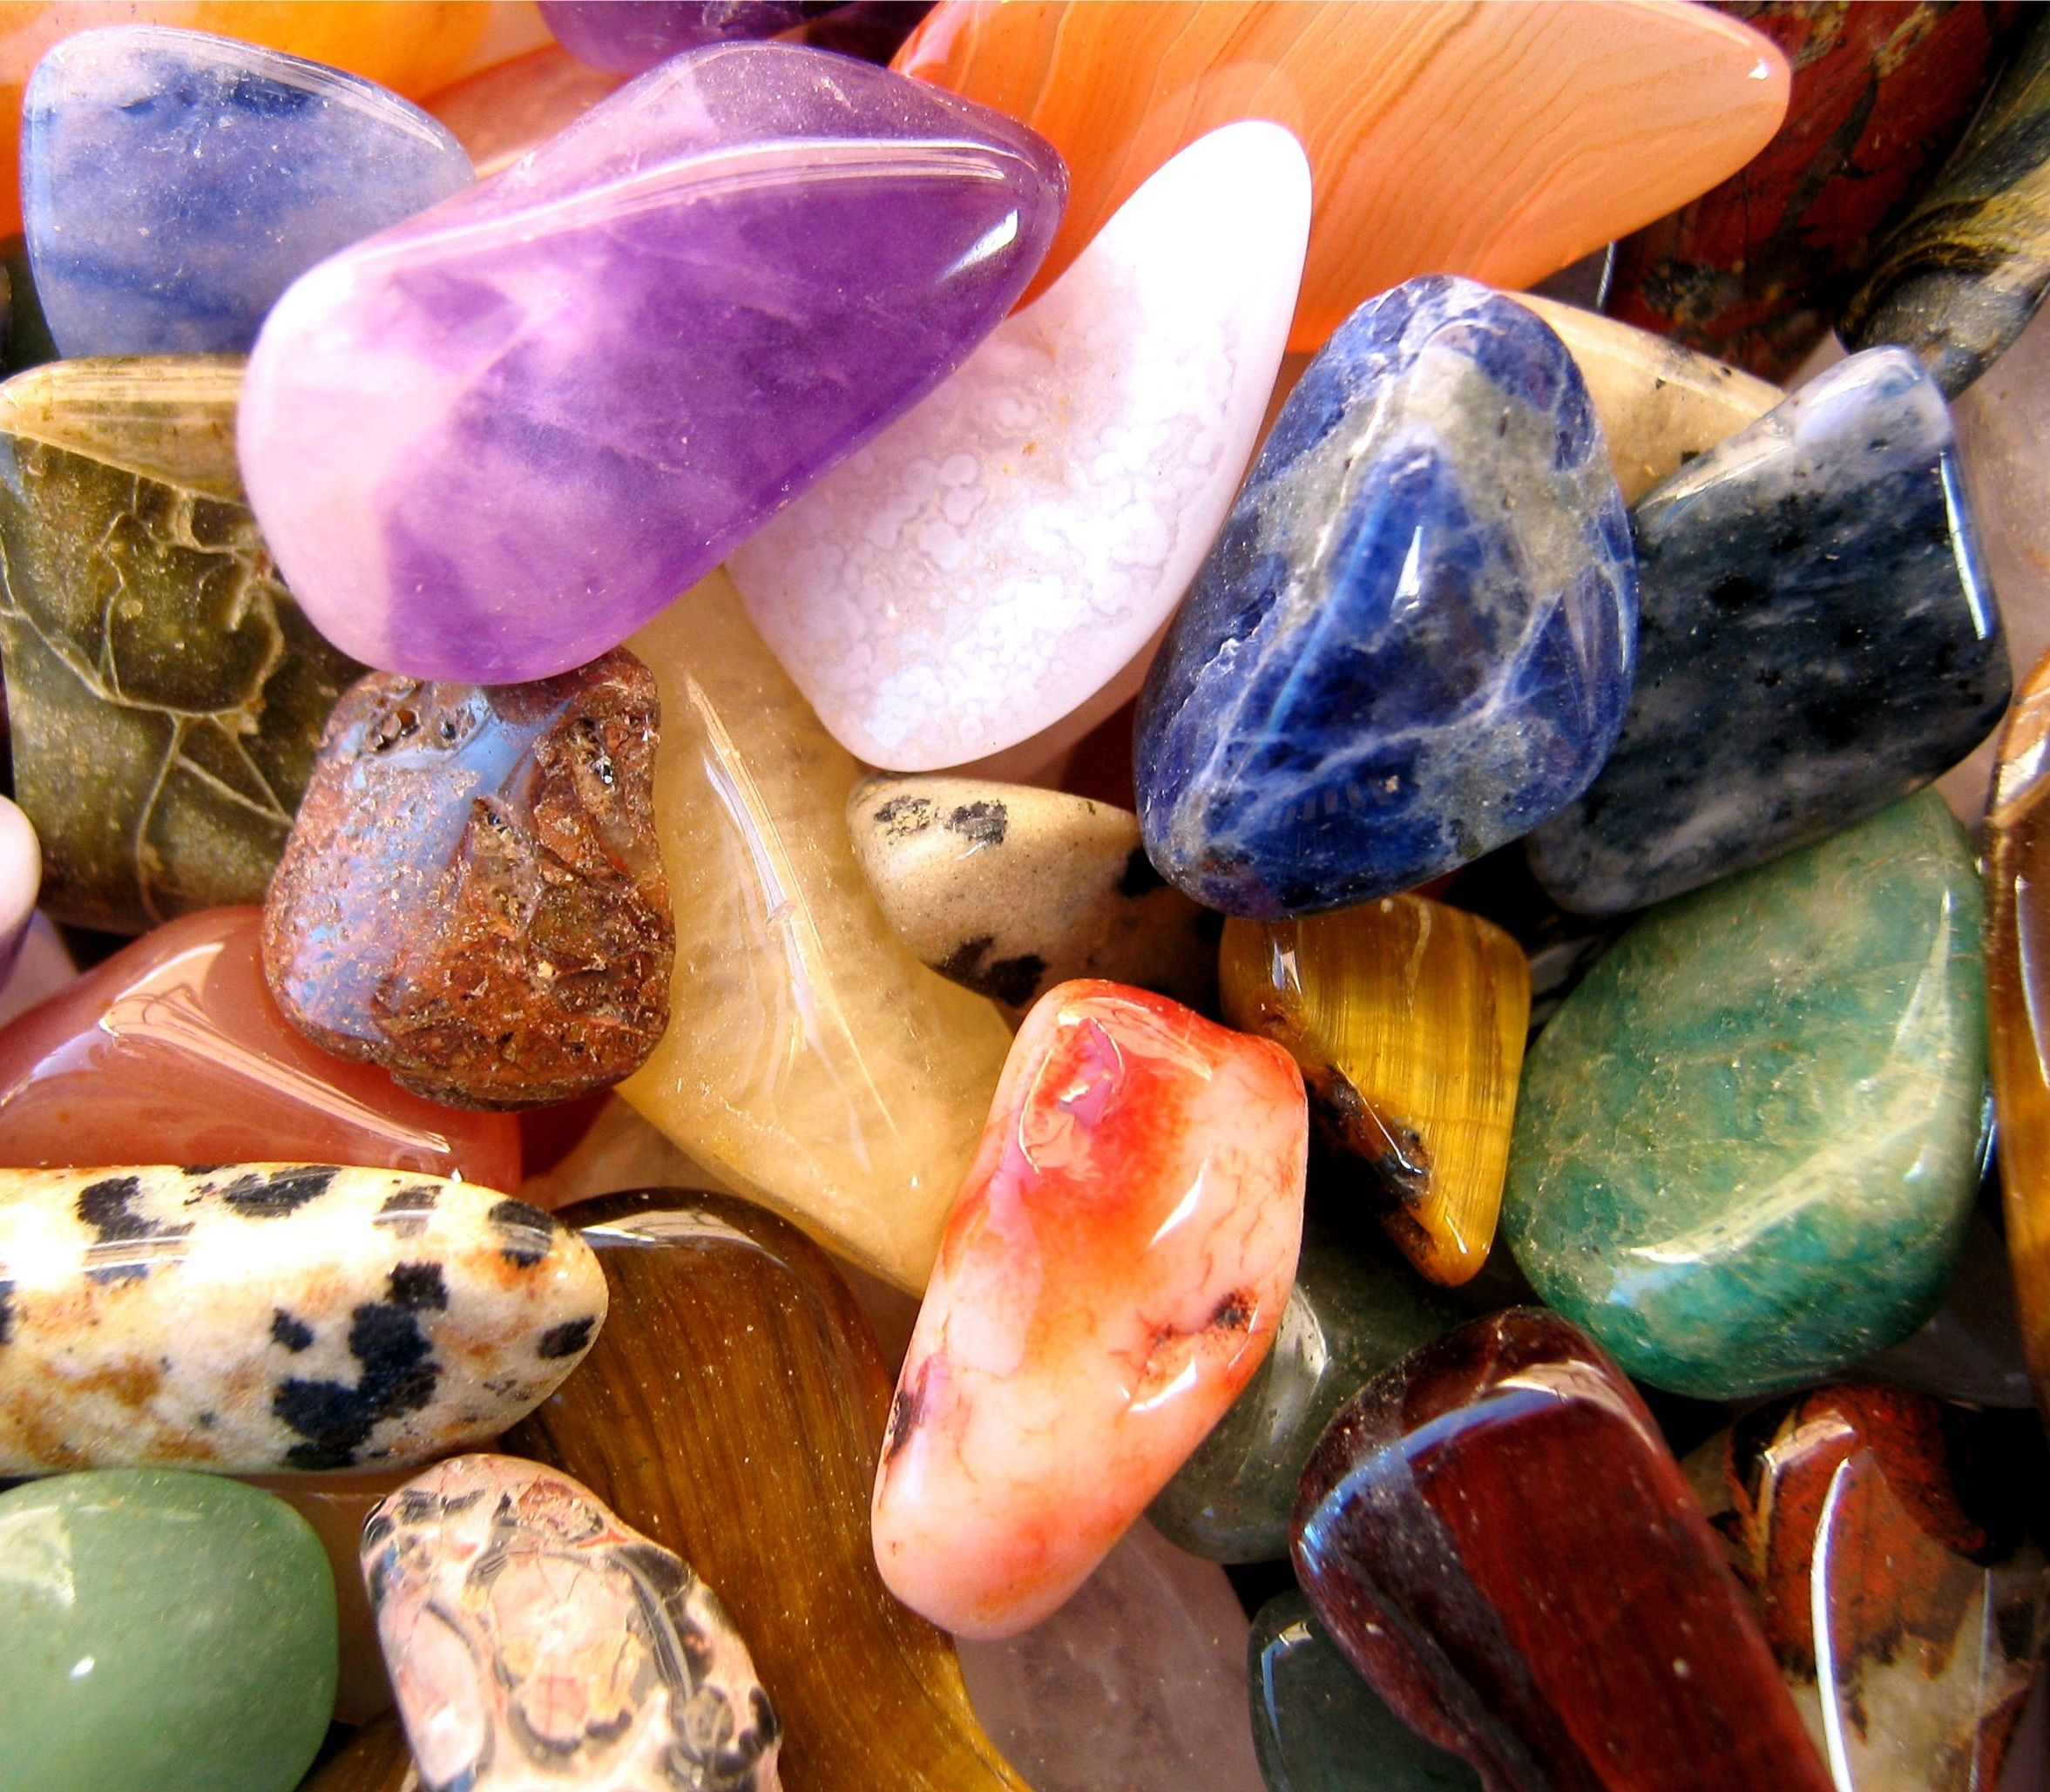 Pin by Janette Coneff on Crystals | Crystals, Small glass